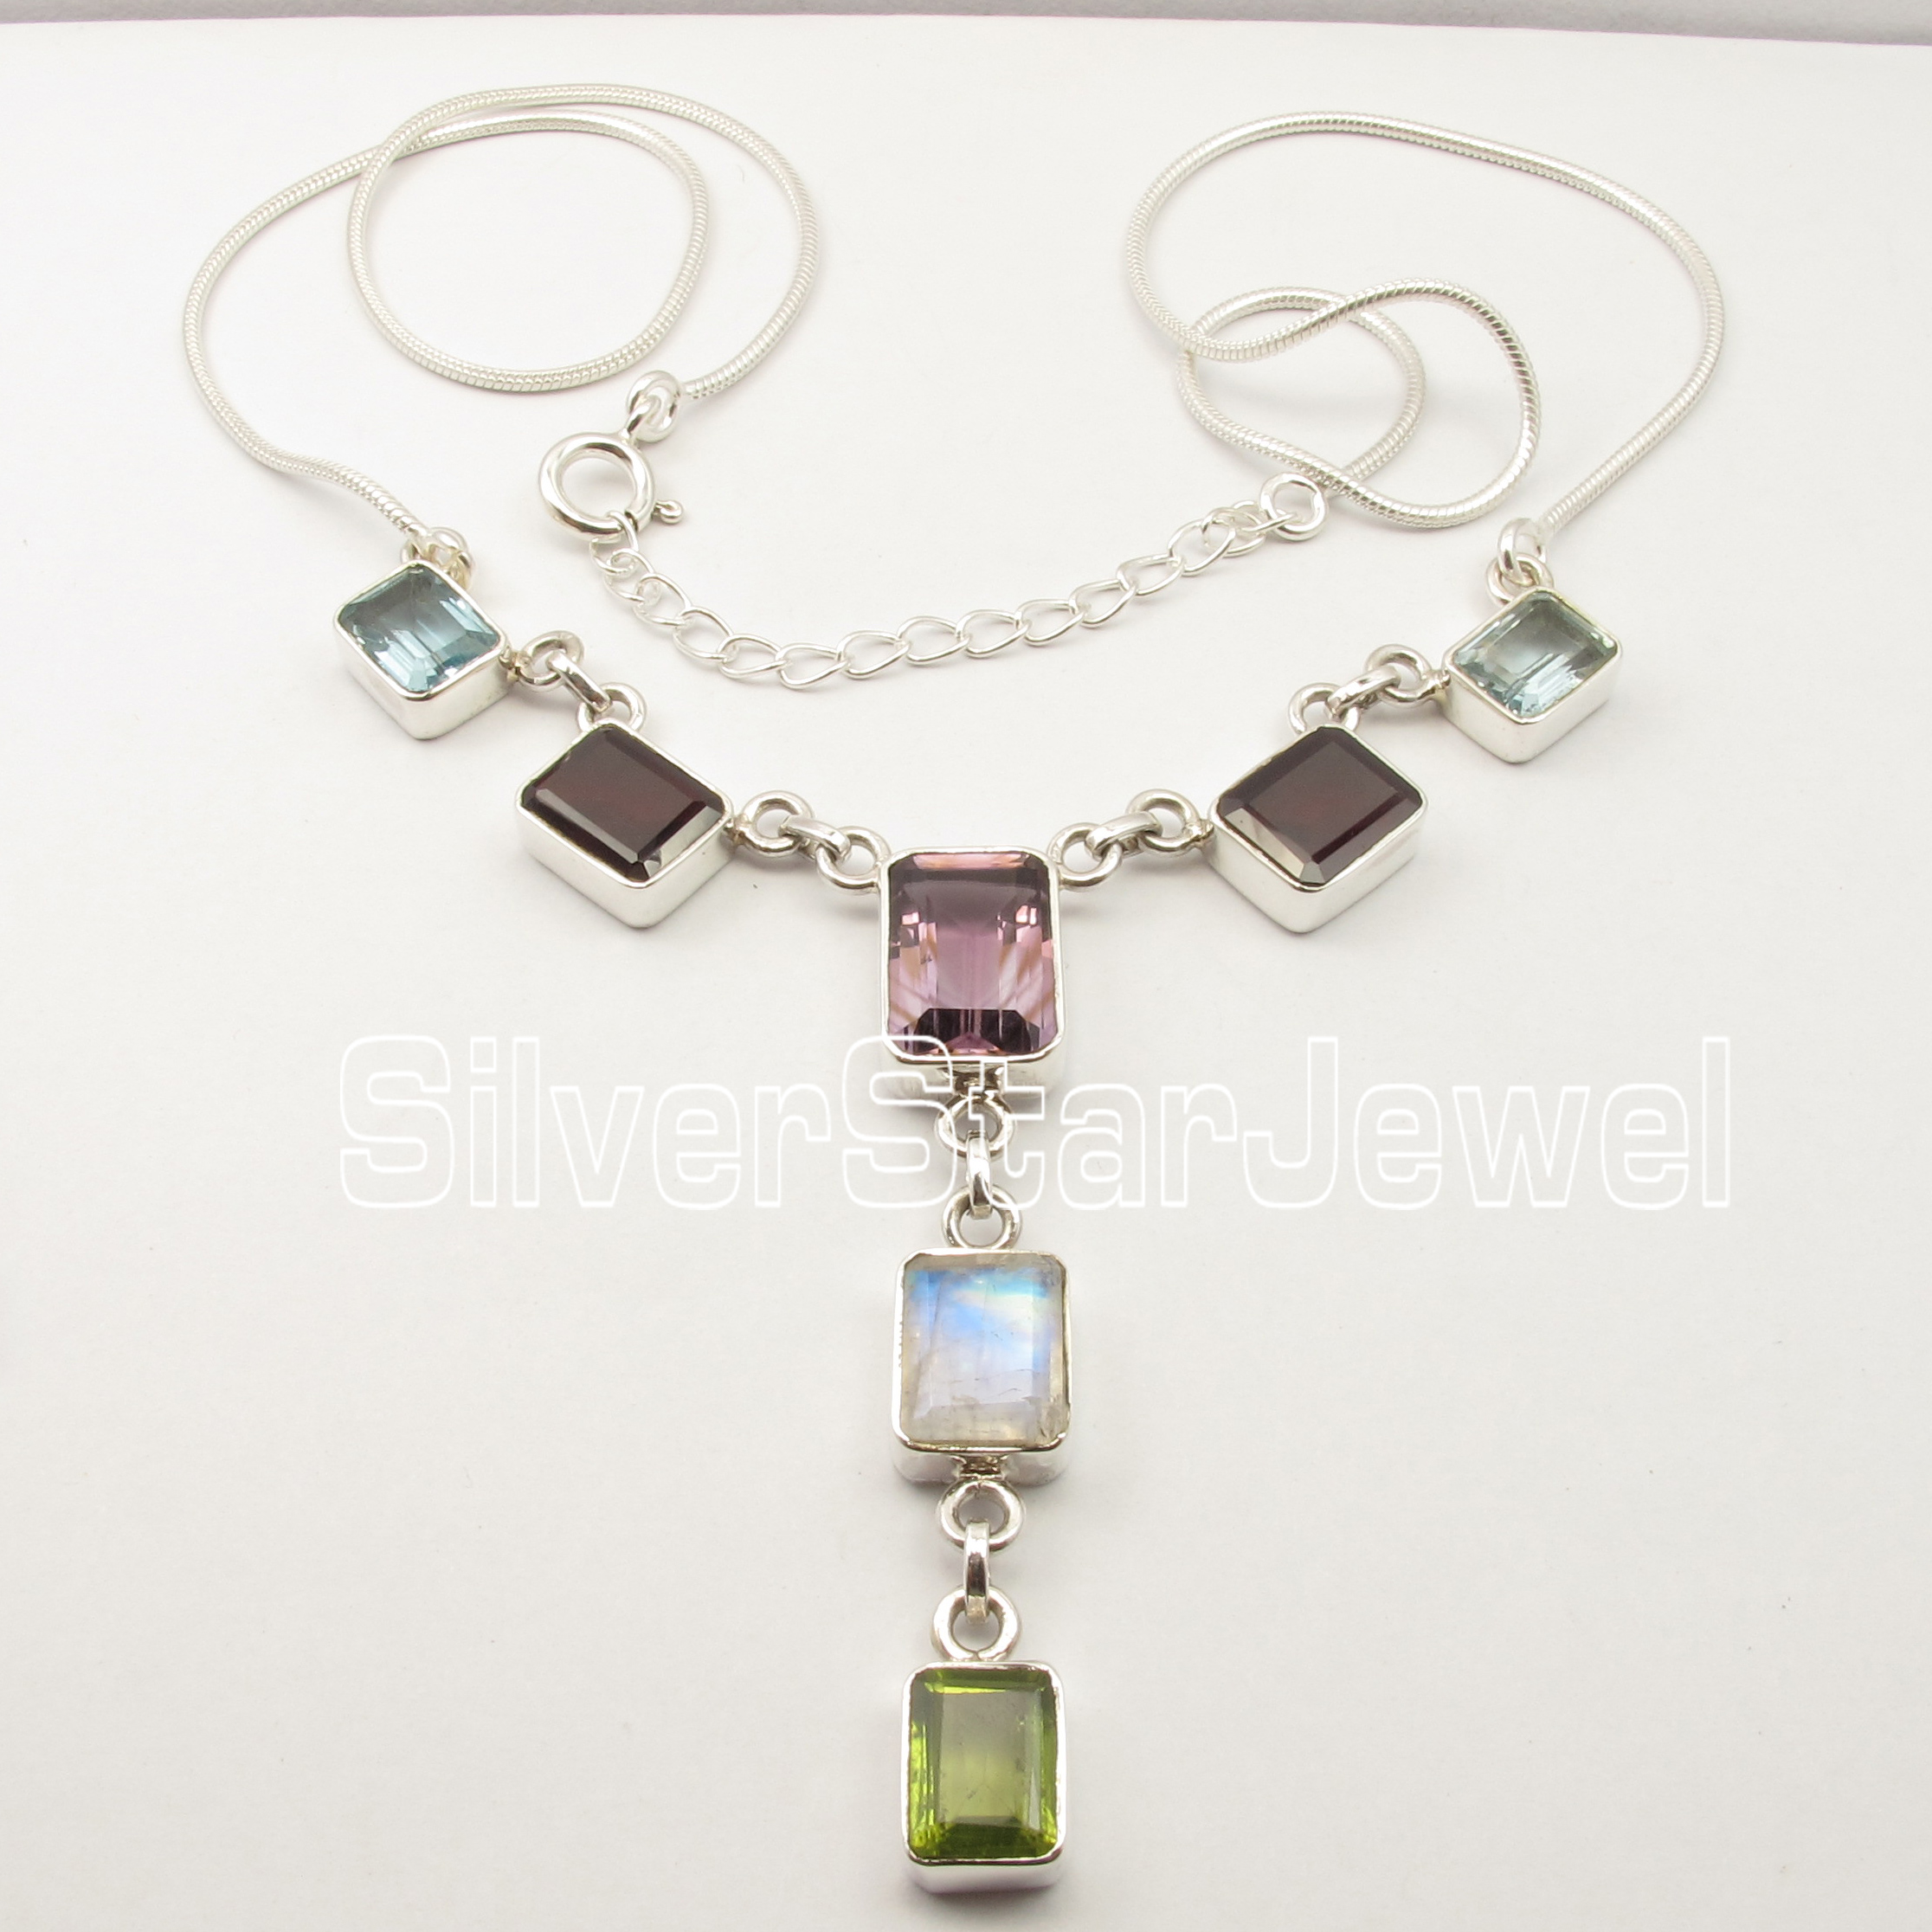 Chanti International Pure Silver Rectangle Faceted MULTI GemS URBAN STYLE Necklace 19 NEW